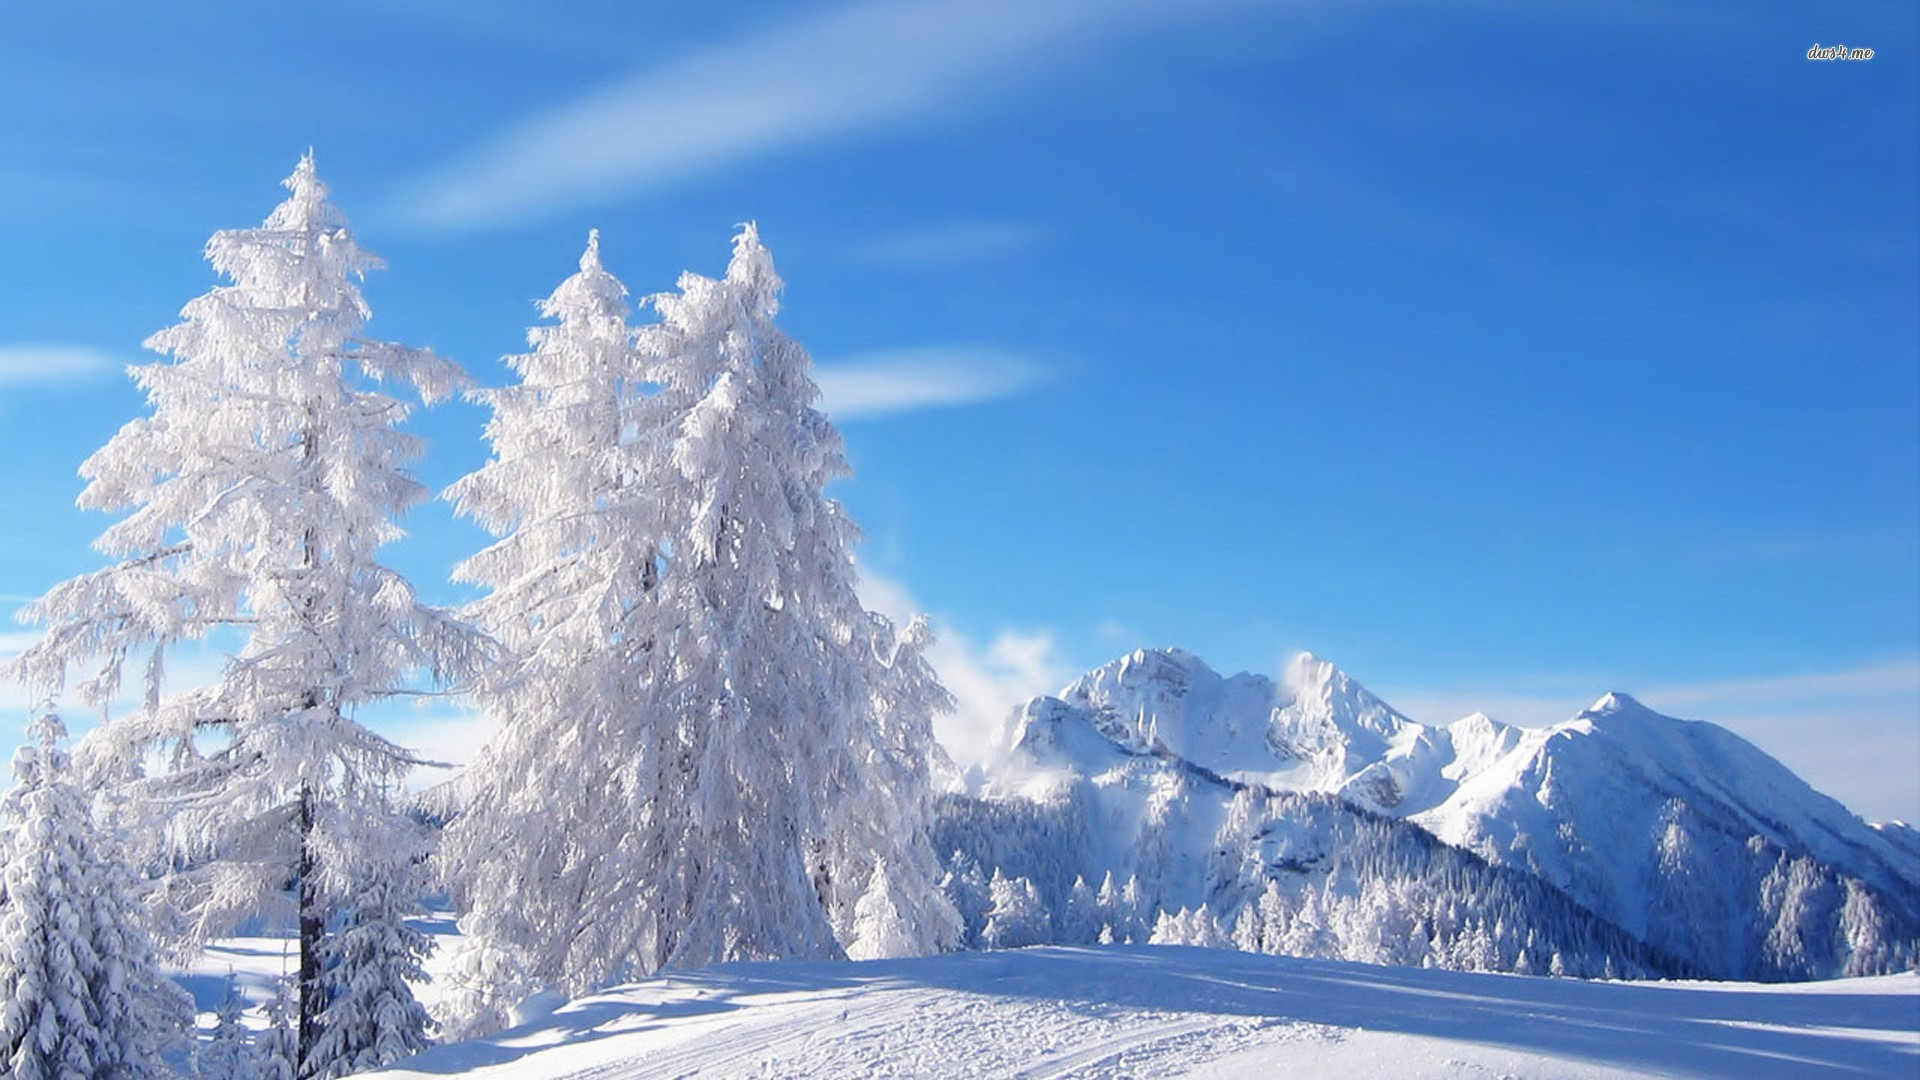 HD Wallpapers Nature Winter